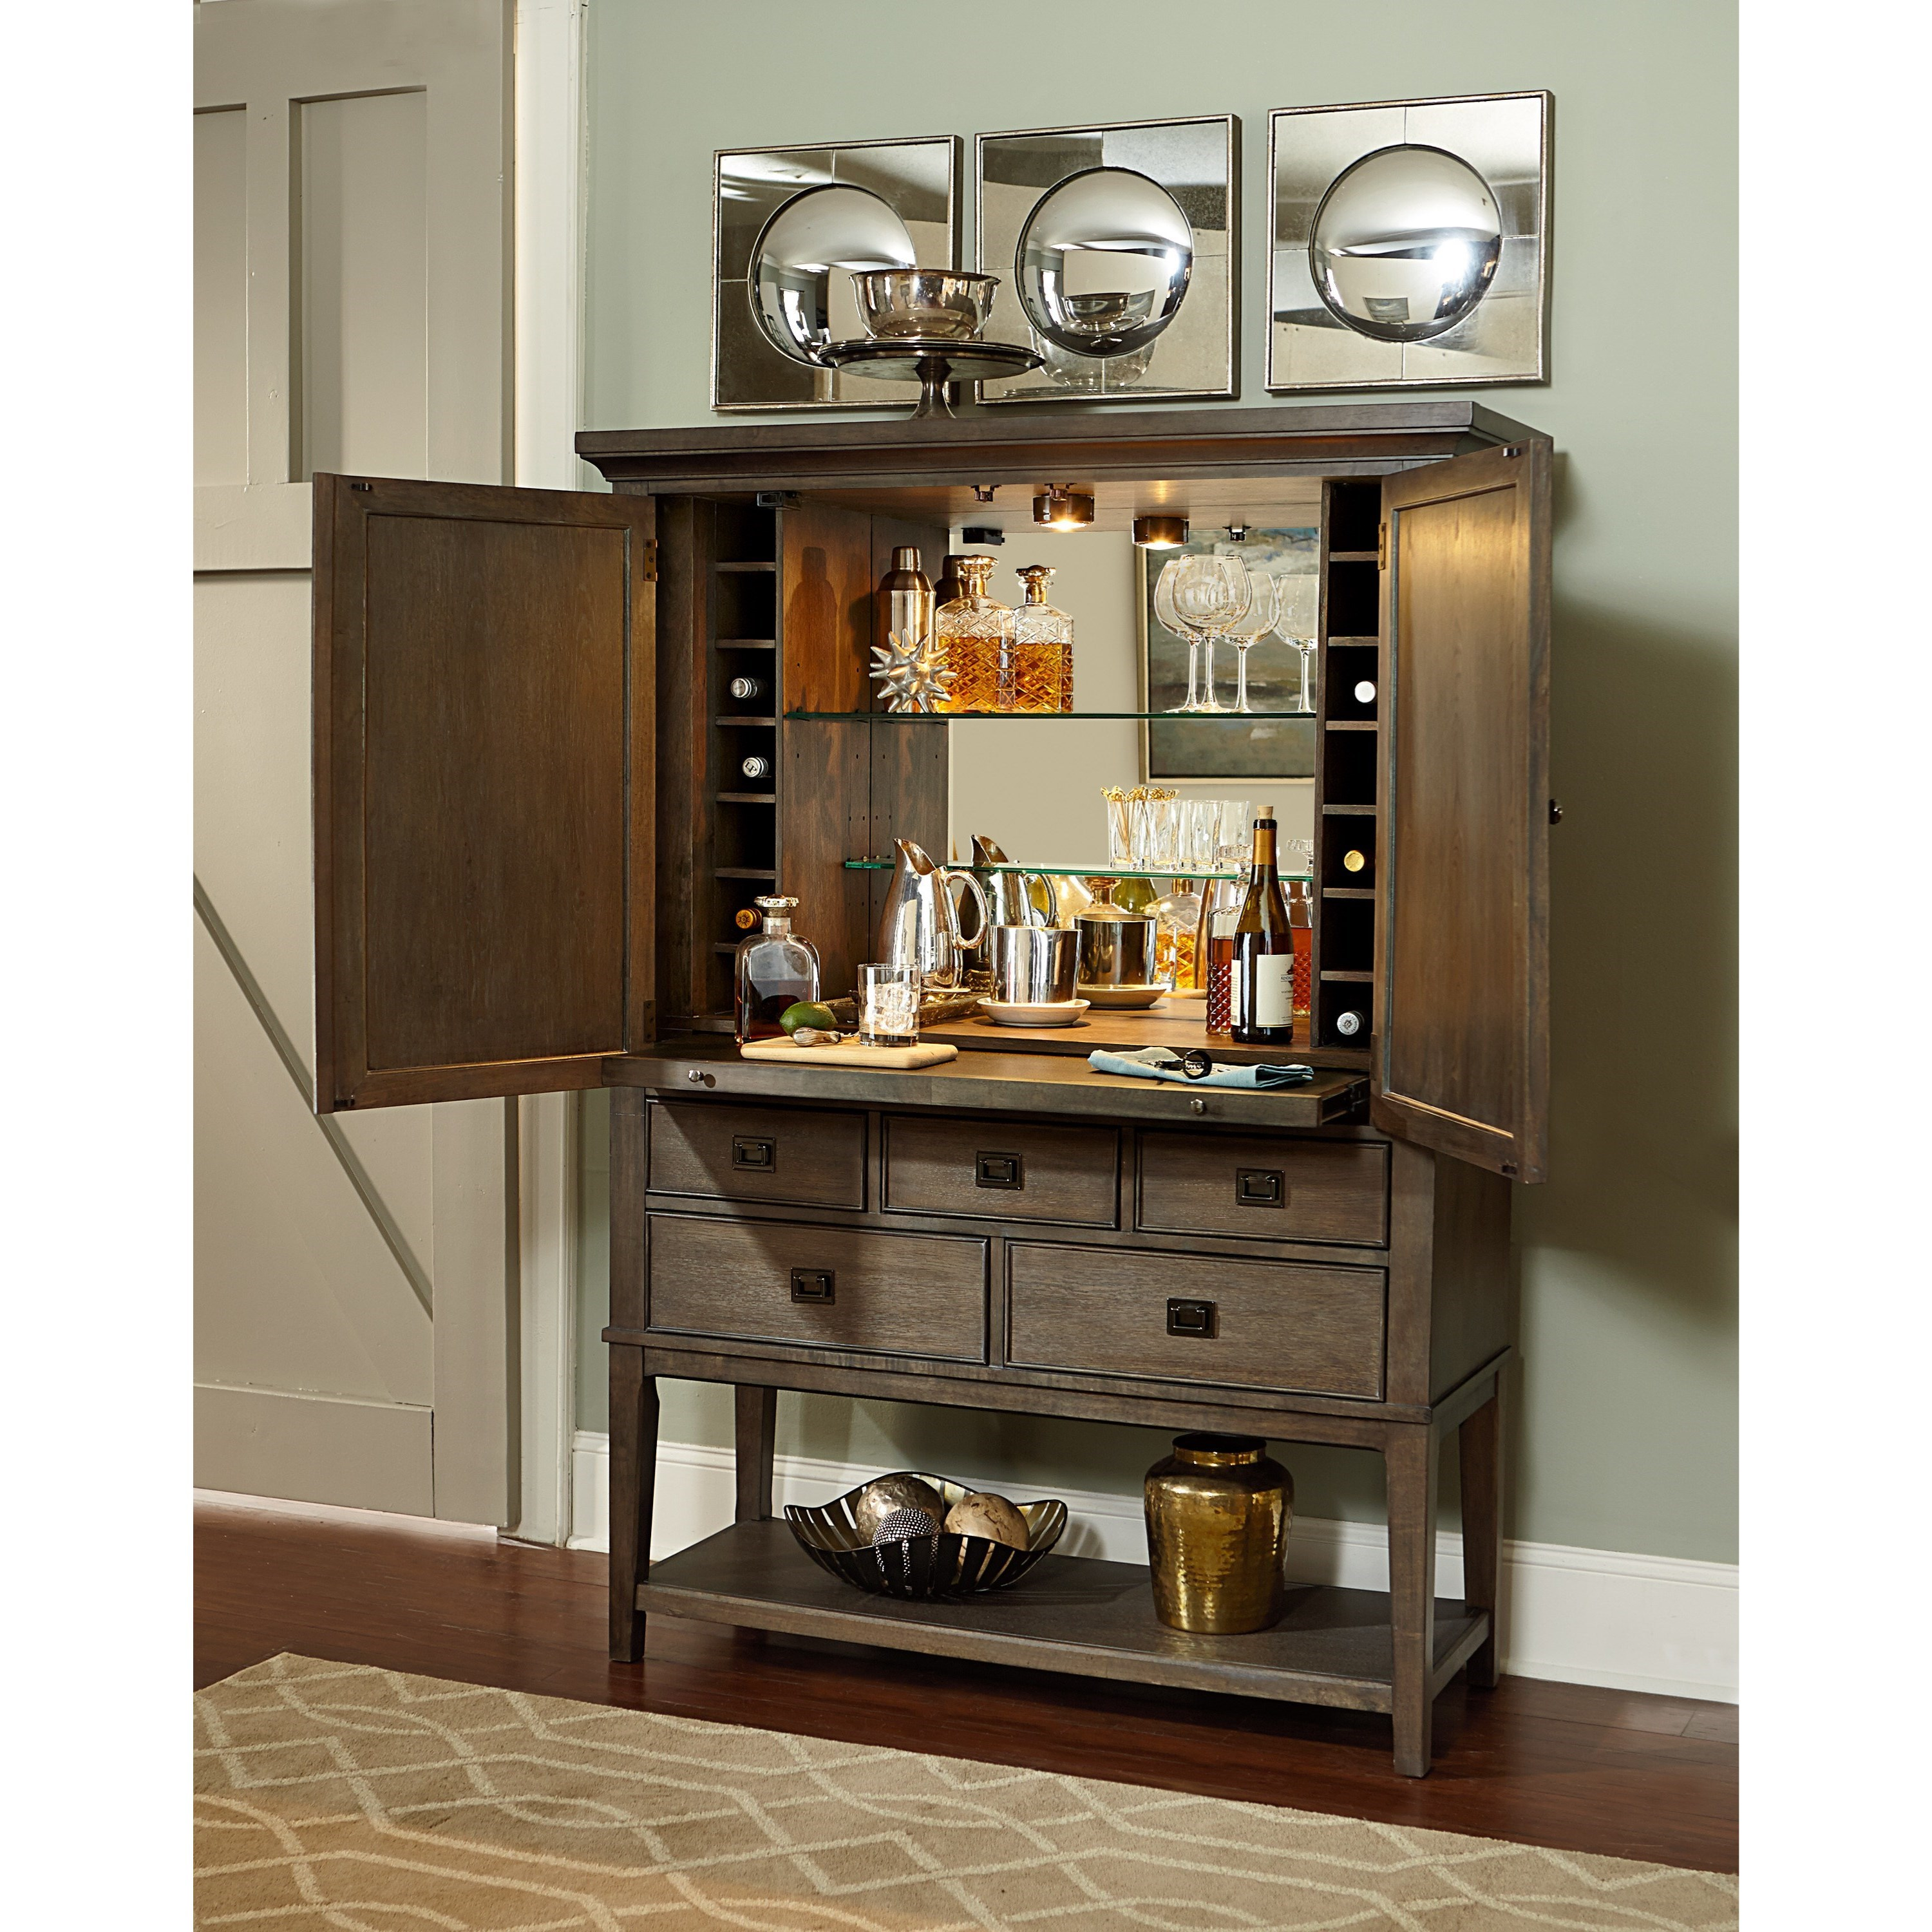 Merveilleux Contemporary Bar Cabinet With Bottle Storage And Pull Out Shelf